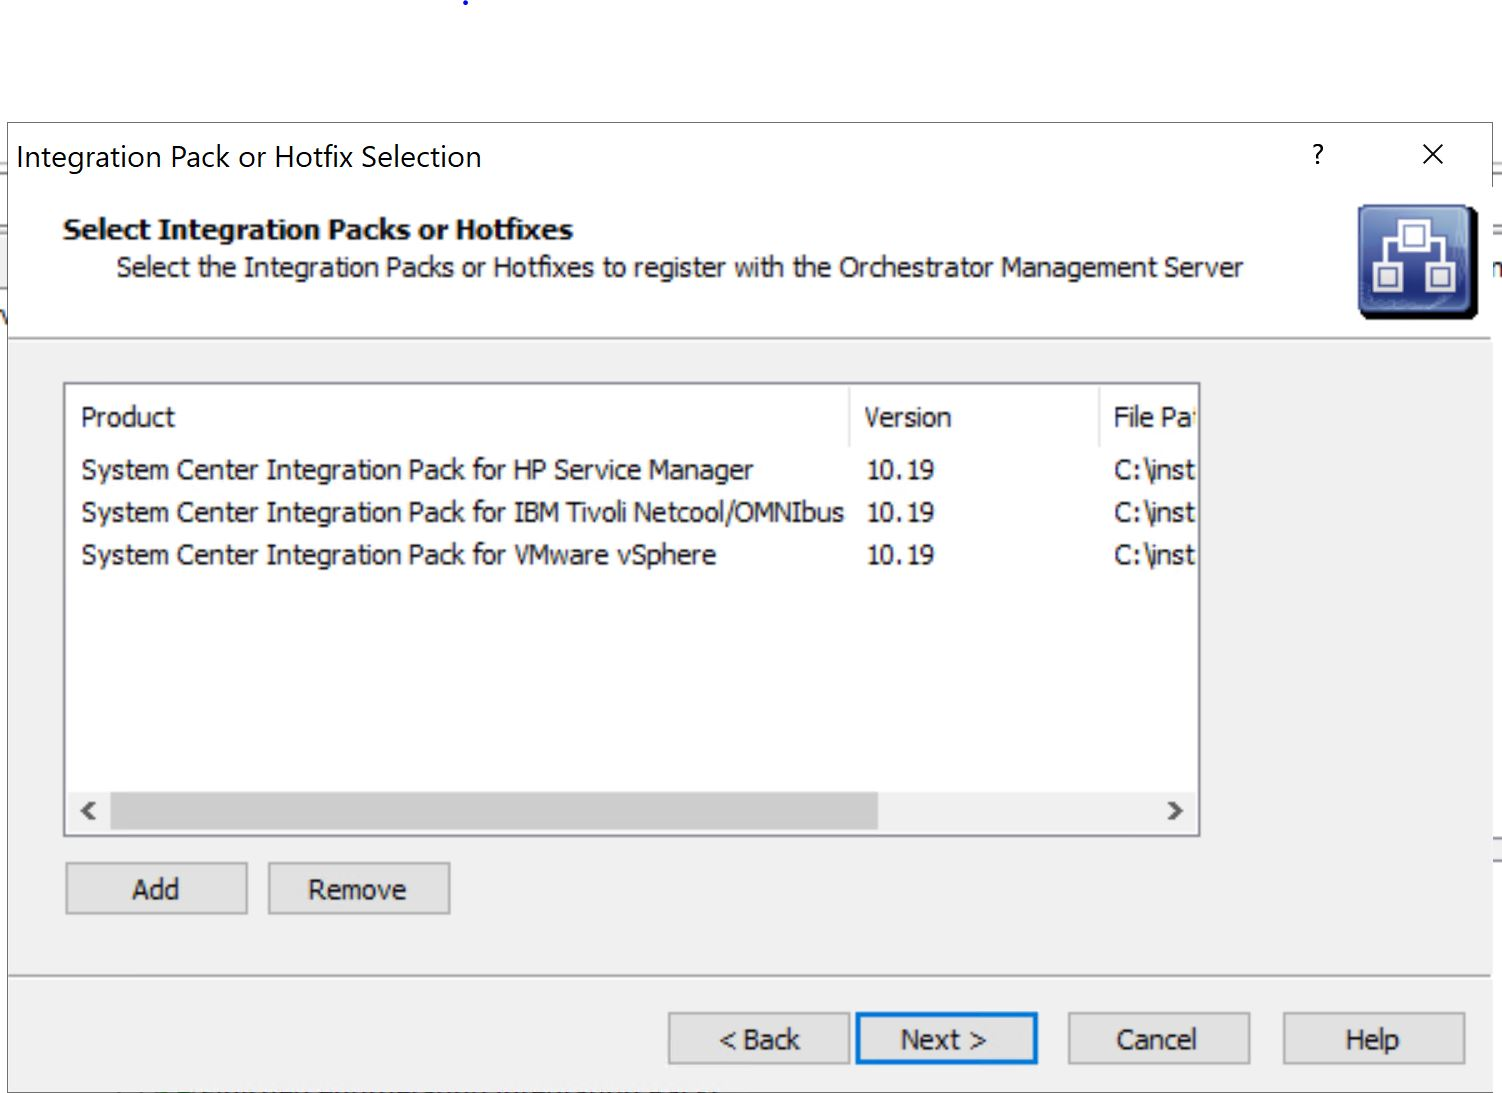 Microsoft released also System Center 2109 Integration Packs for 3rd party Systems